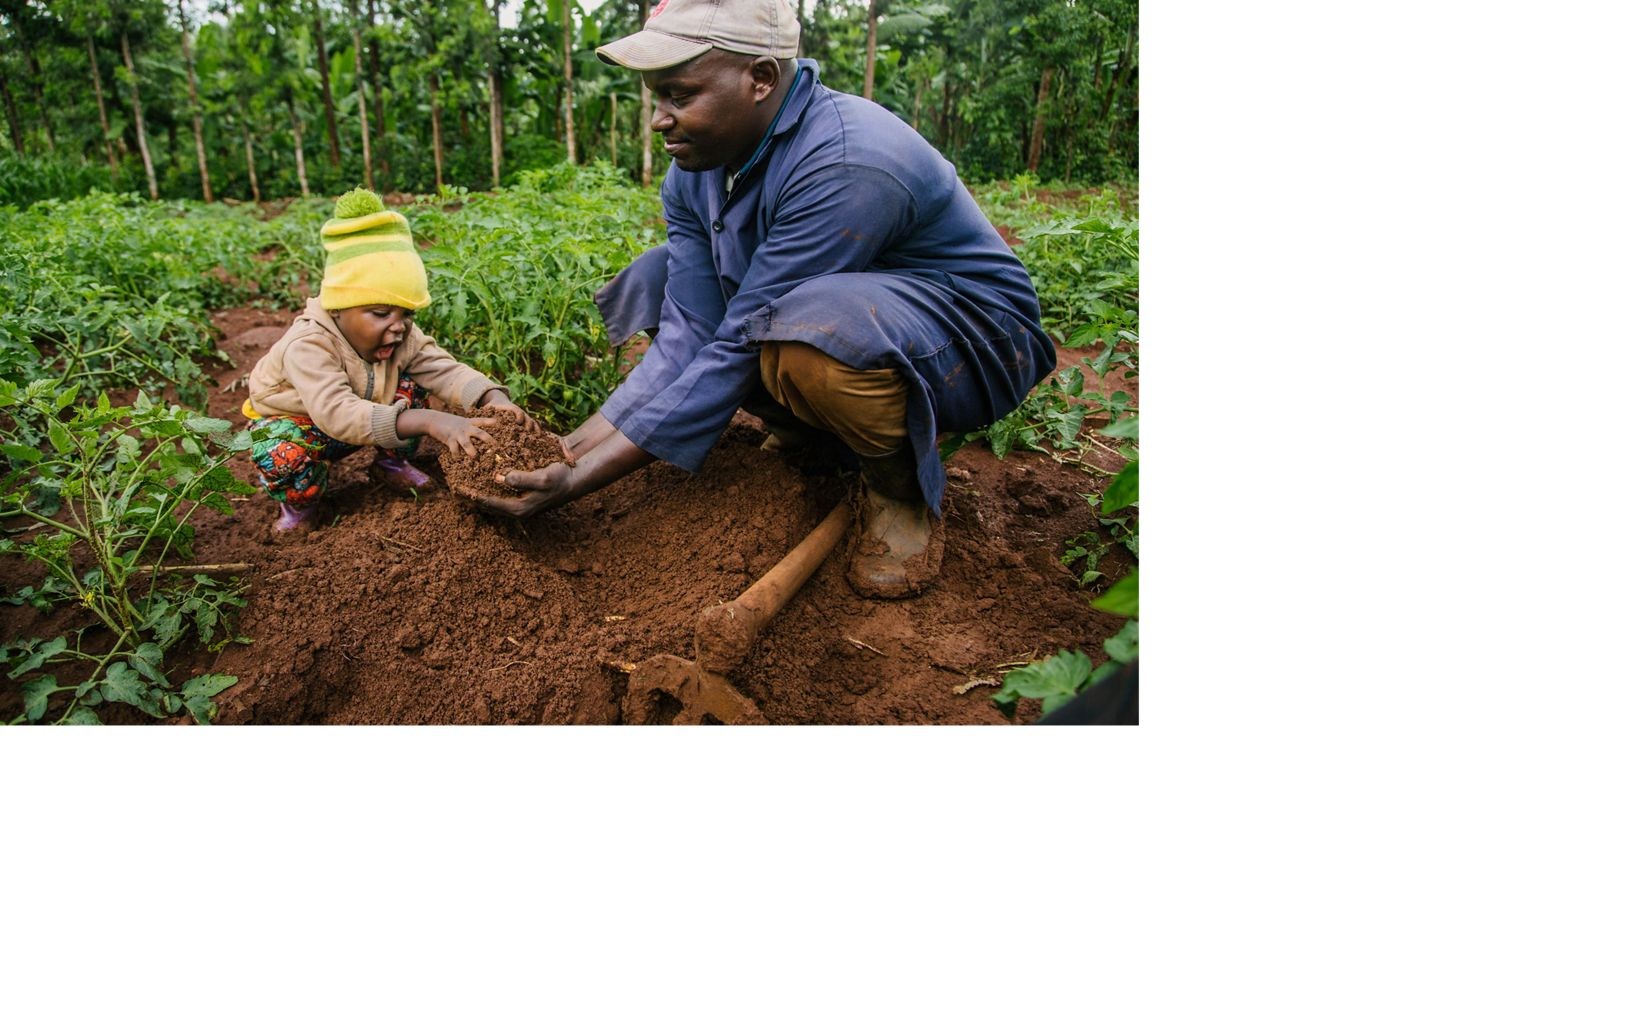 man and child playing with dirt